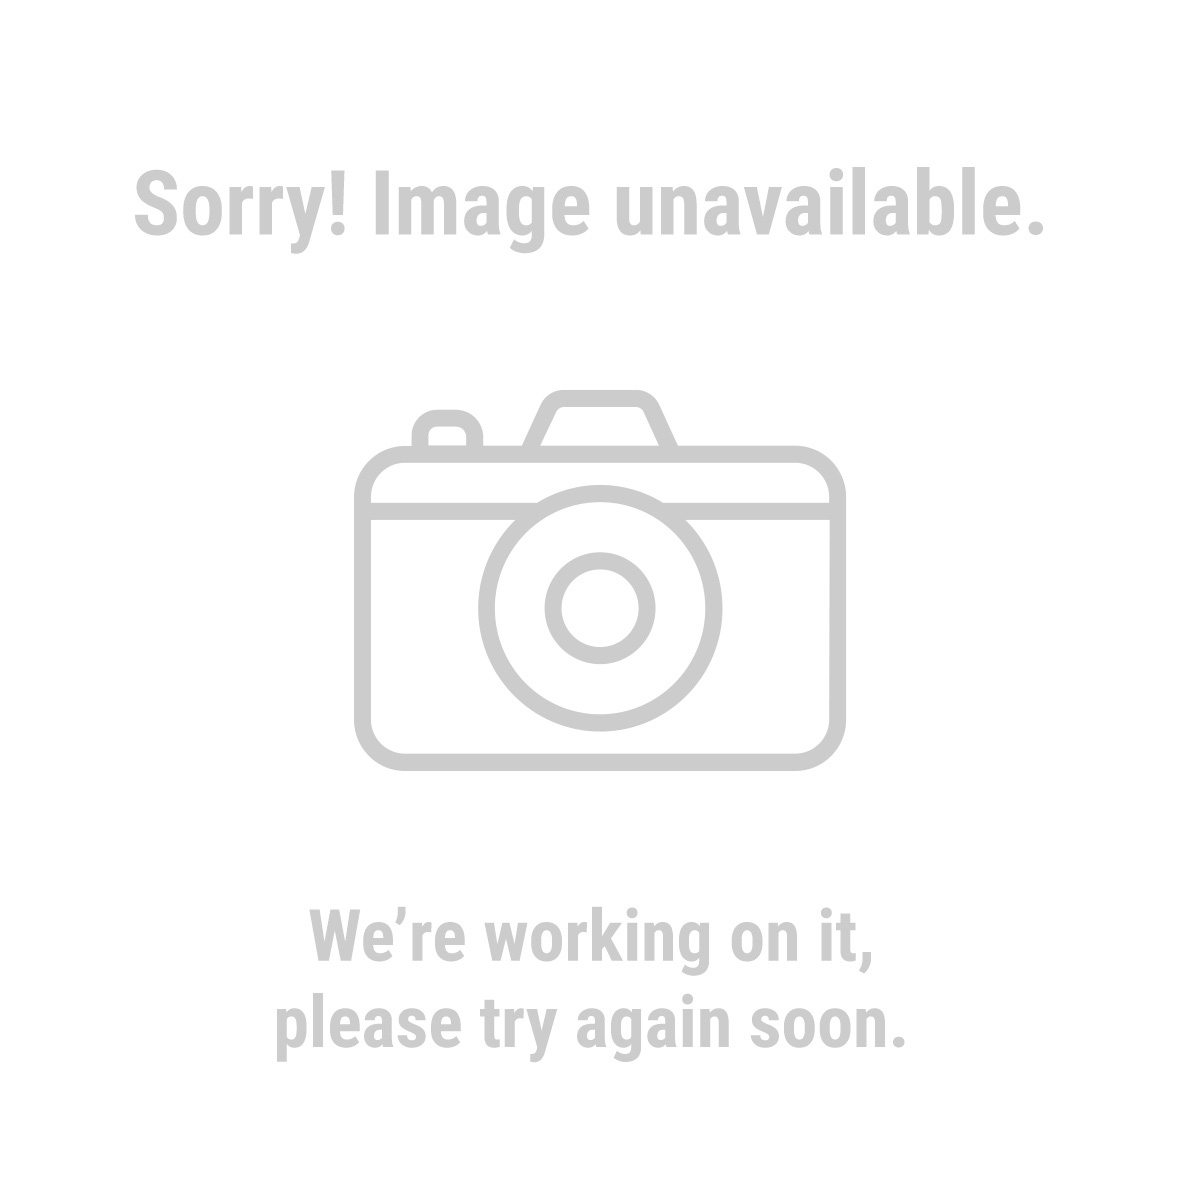 Western Safety 66538 Safety Goggles 3 Pk